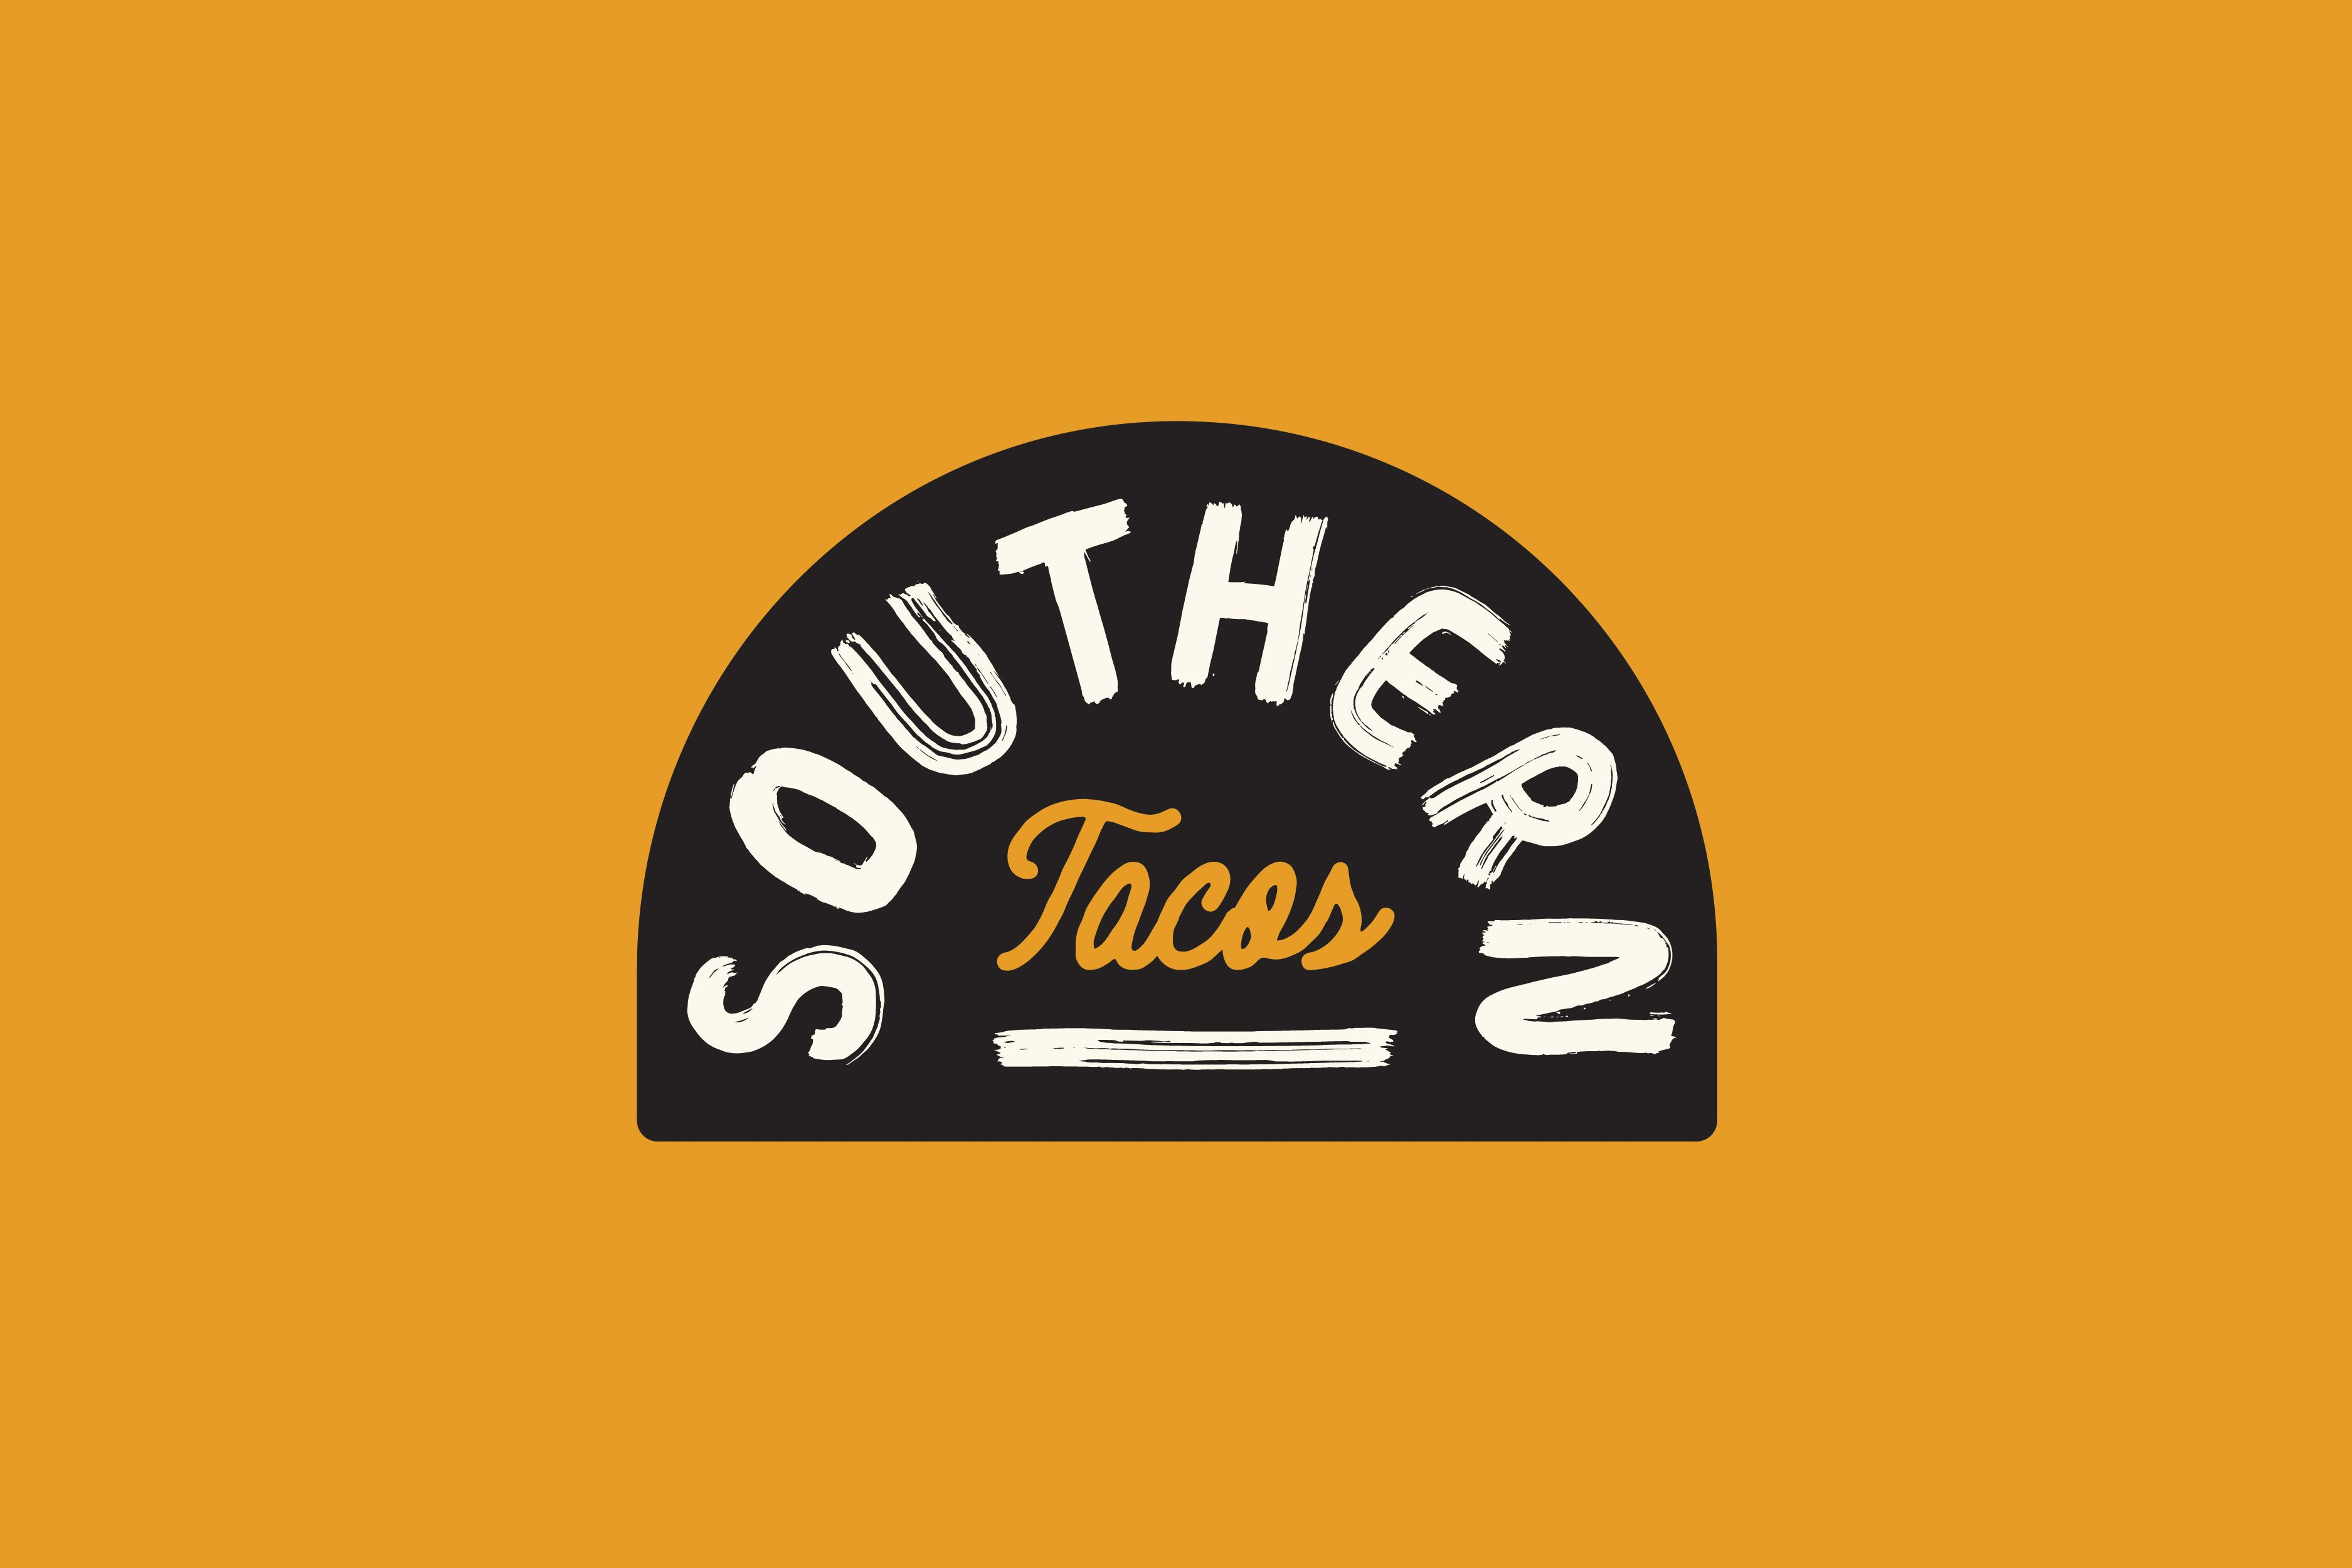 Southern Tacos is a California based food truck. The taco